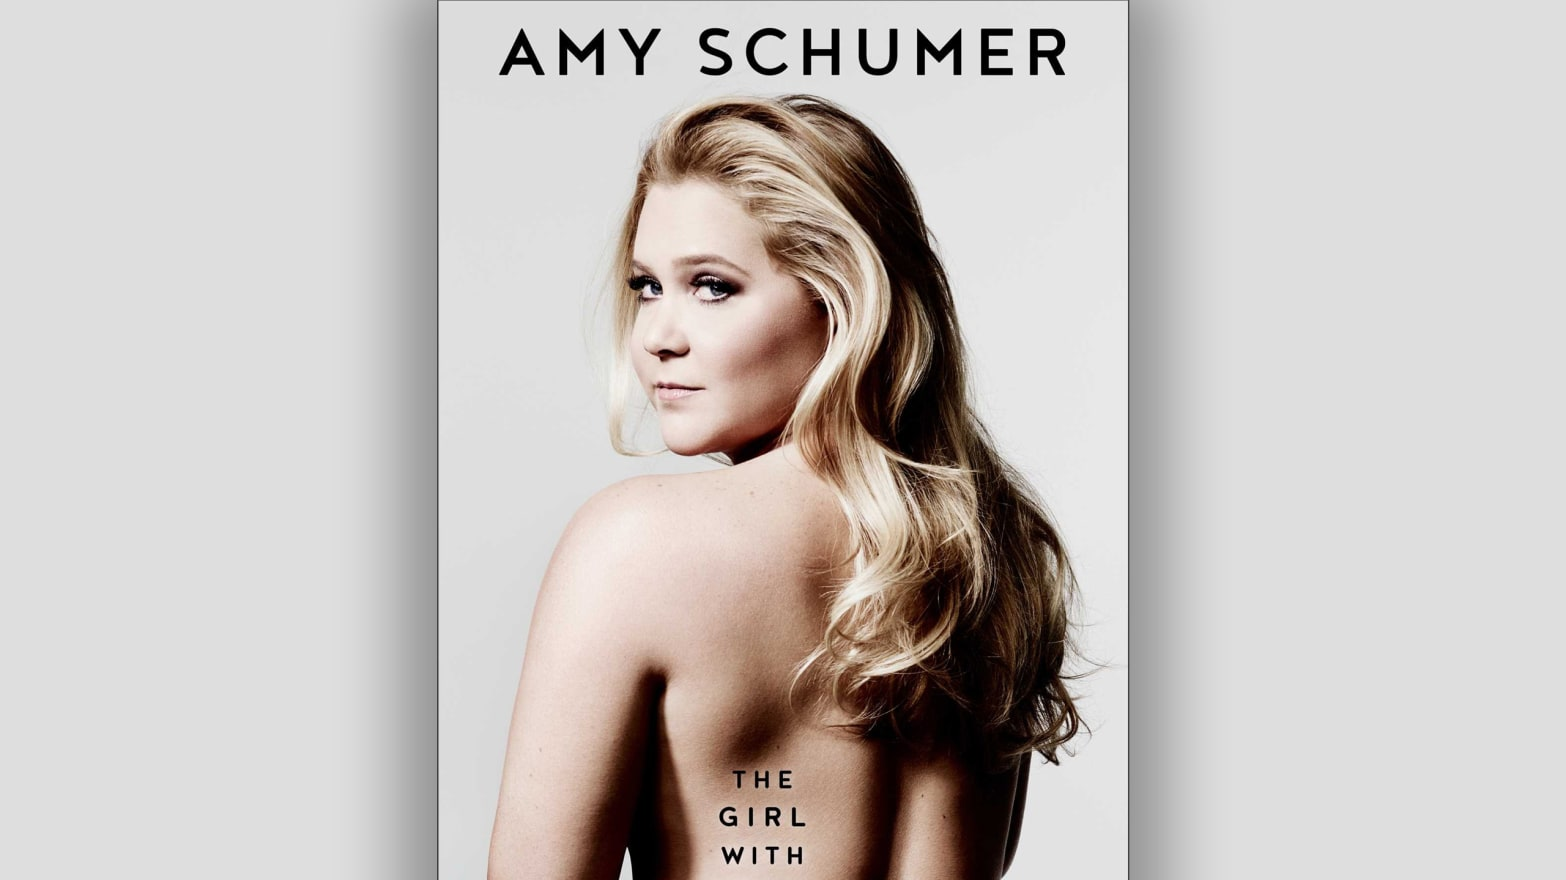 Amy Schumer Fucked amy schumer's deepest confessions, from family to abuse, in